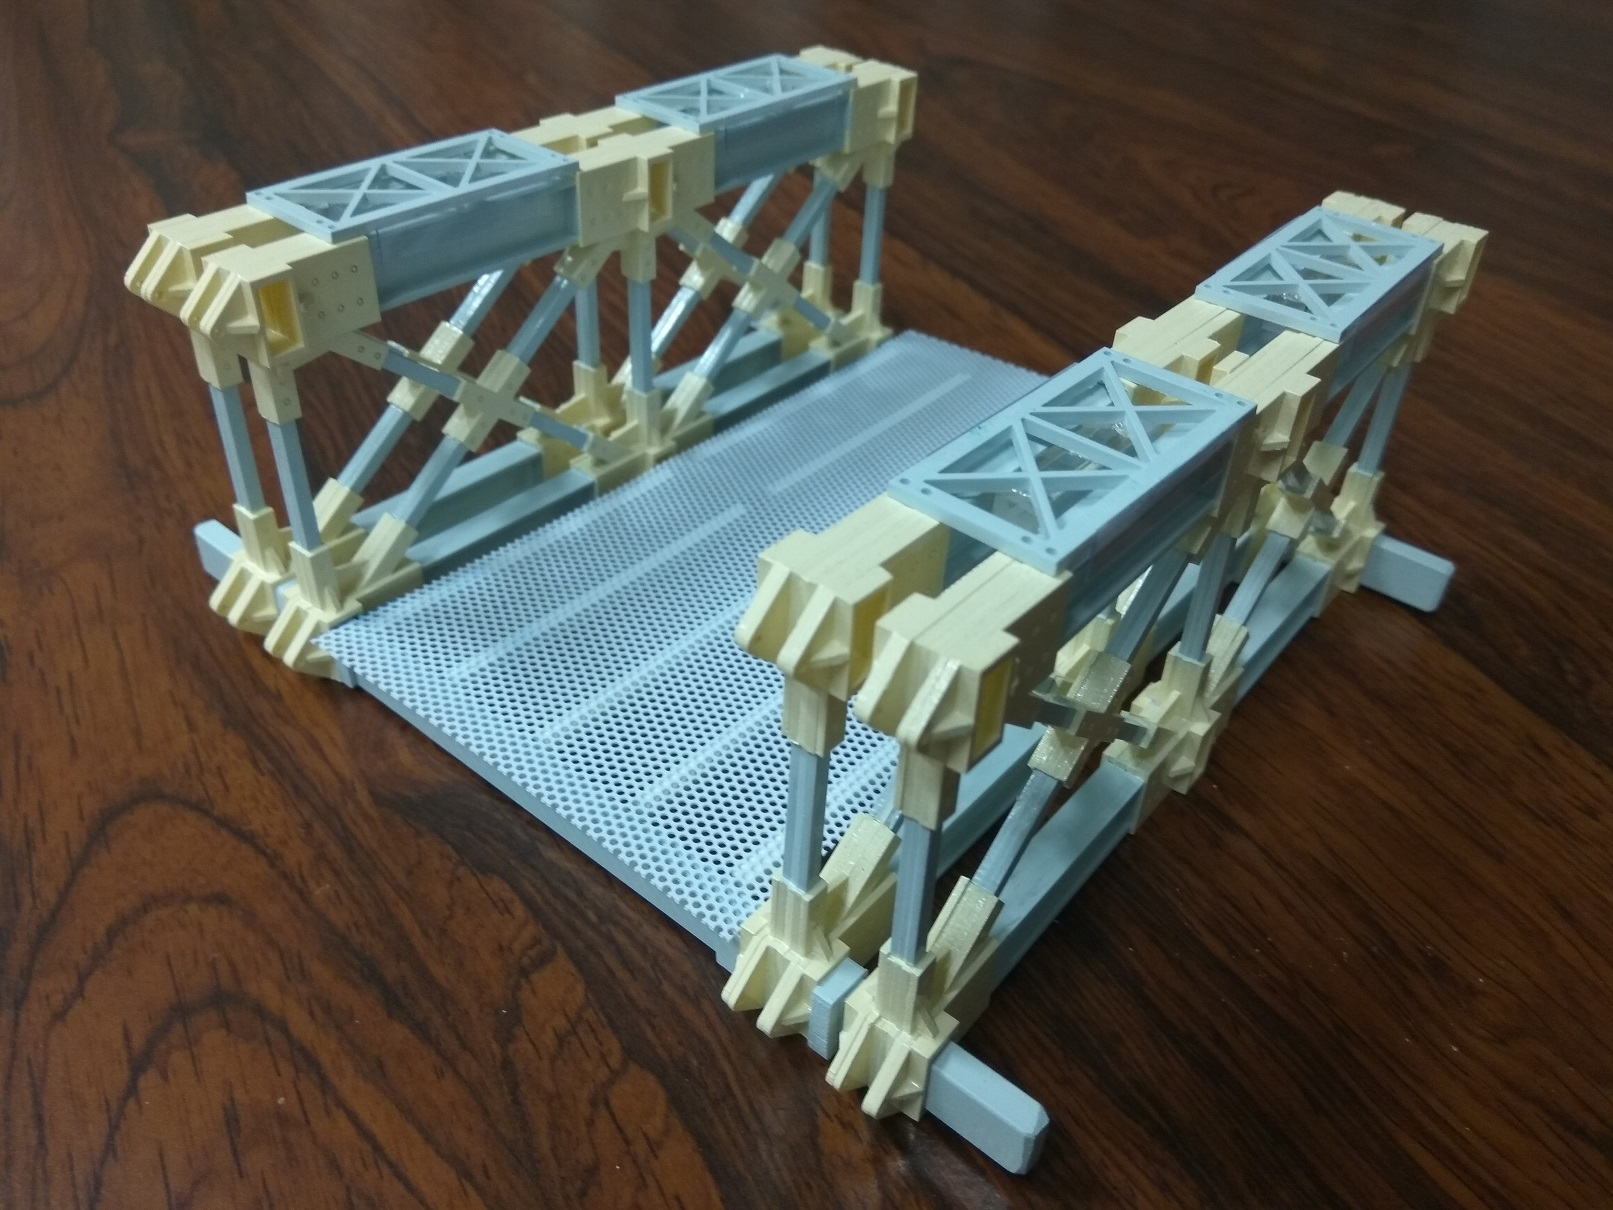 Modular lightweight composite truss-type transportable bridge for disaster relief